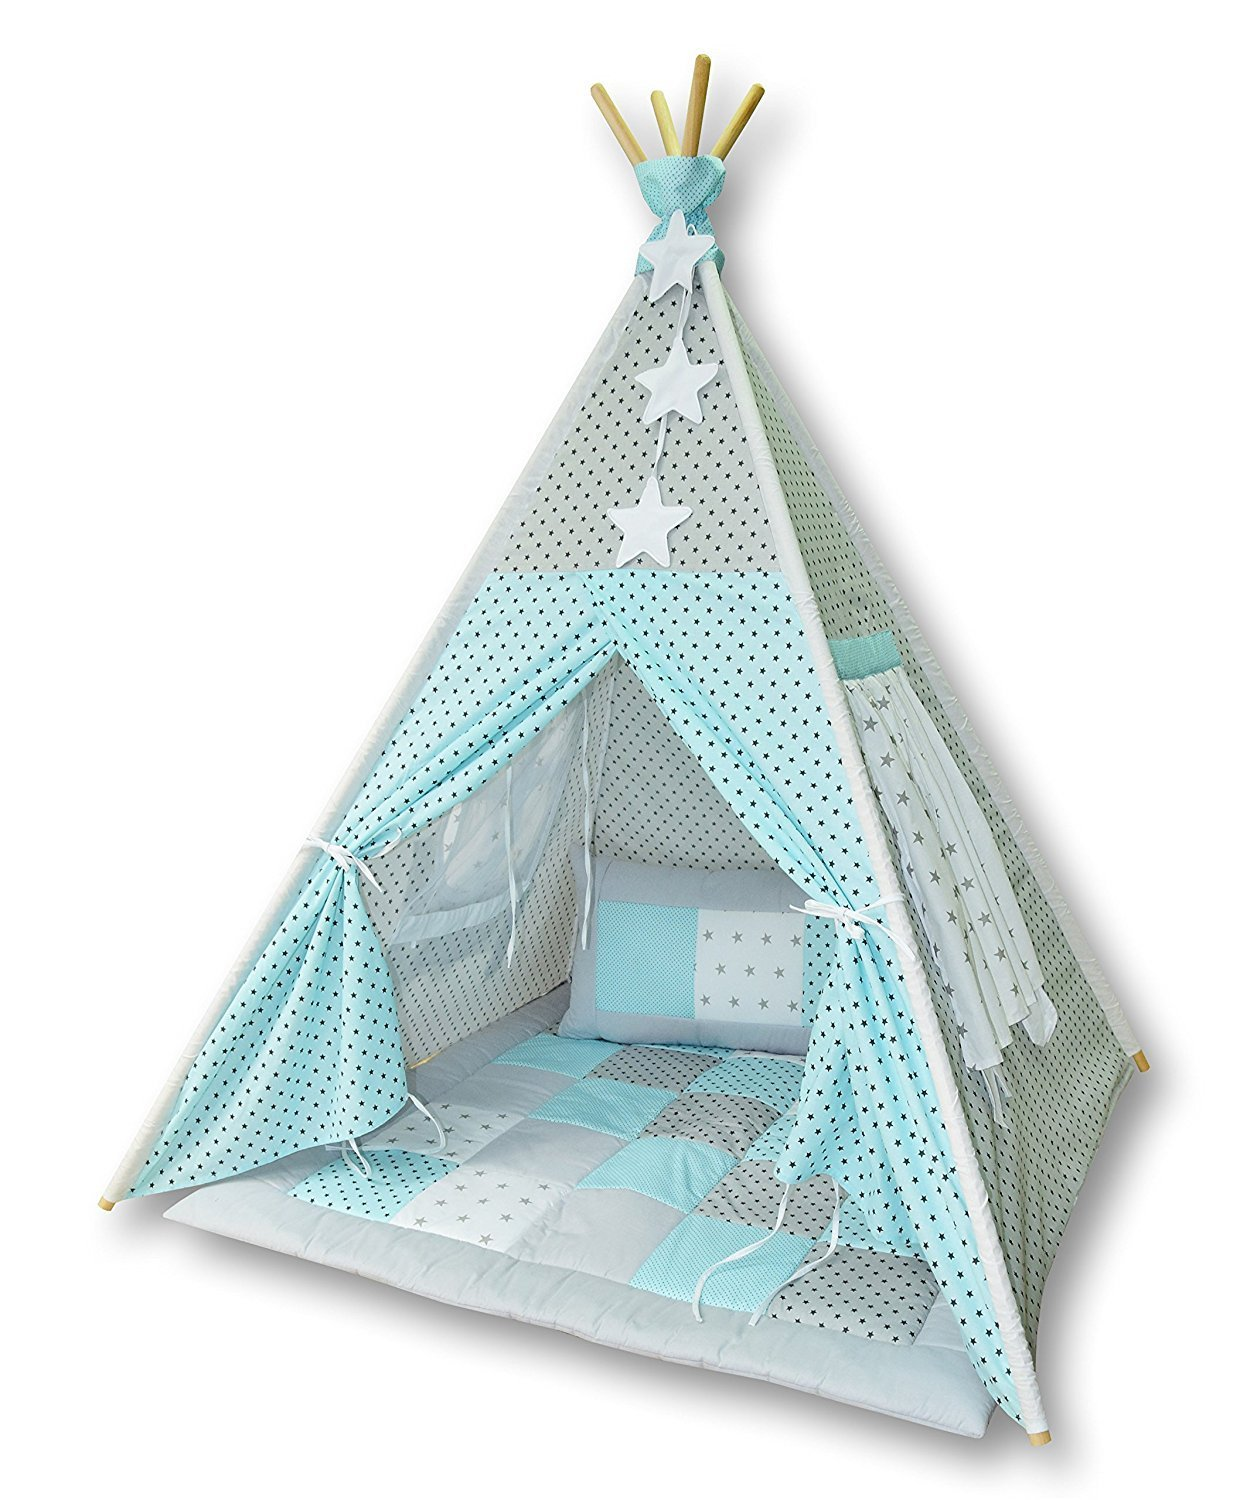 tipi spielzelt zelt f r kinder t08 spielzelt mit tipidecke mit kissen neu ebay. Black Bedroom Furniture Sets. Home Design Ideas